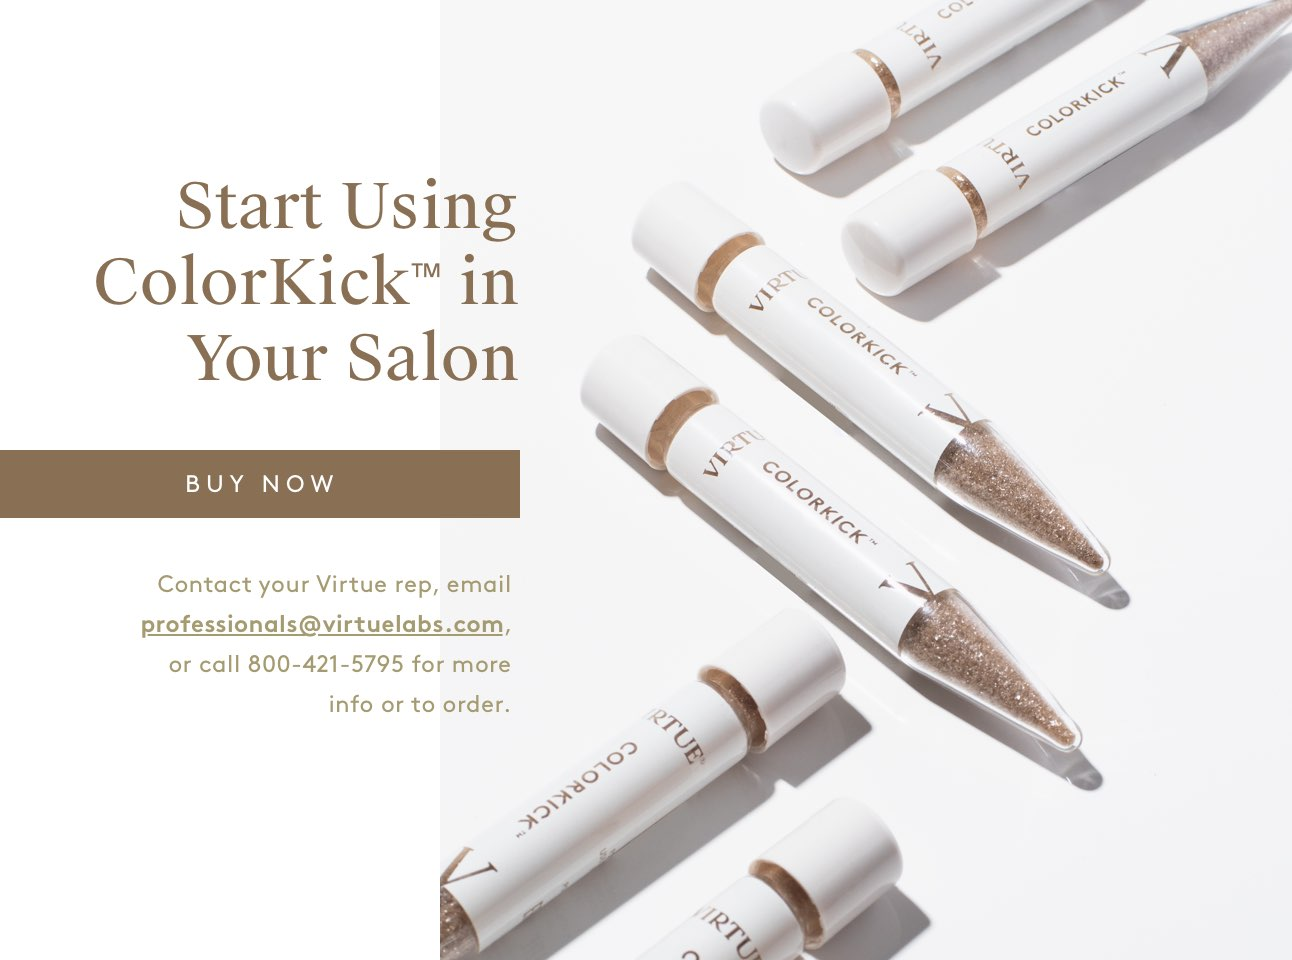 Start Using ColorKick™ in Your Salon